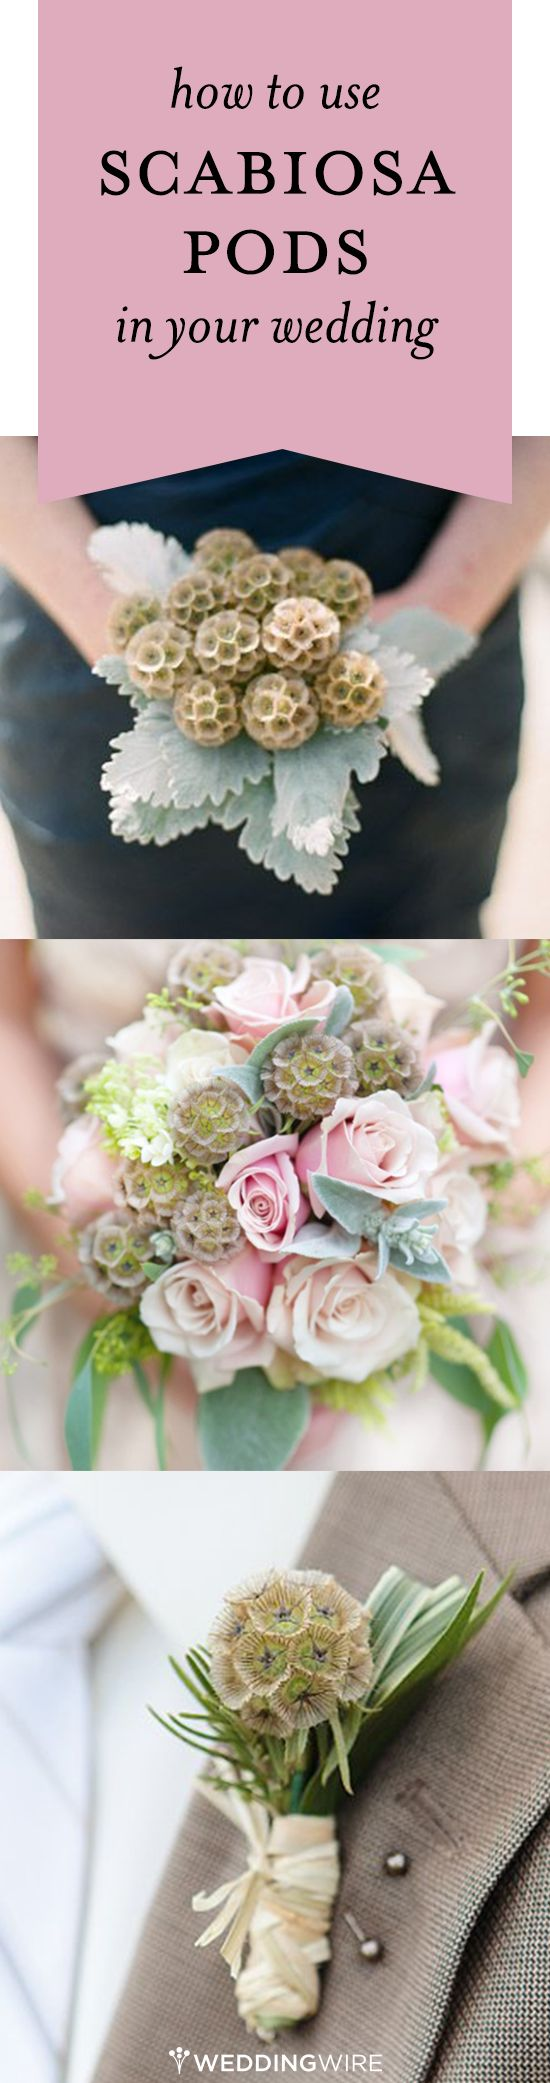 We love scabiosa pods! Find out how to use this unique accent in your wedding floral arrangements! #weddingflowers #FallBook